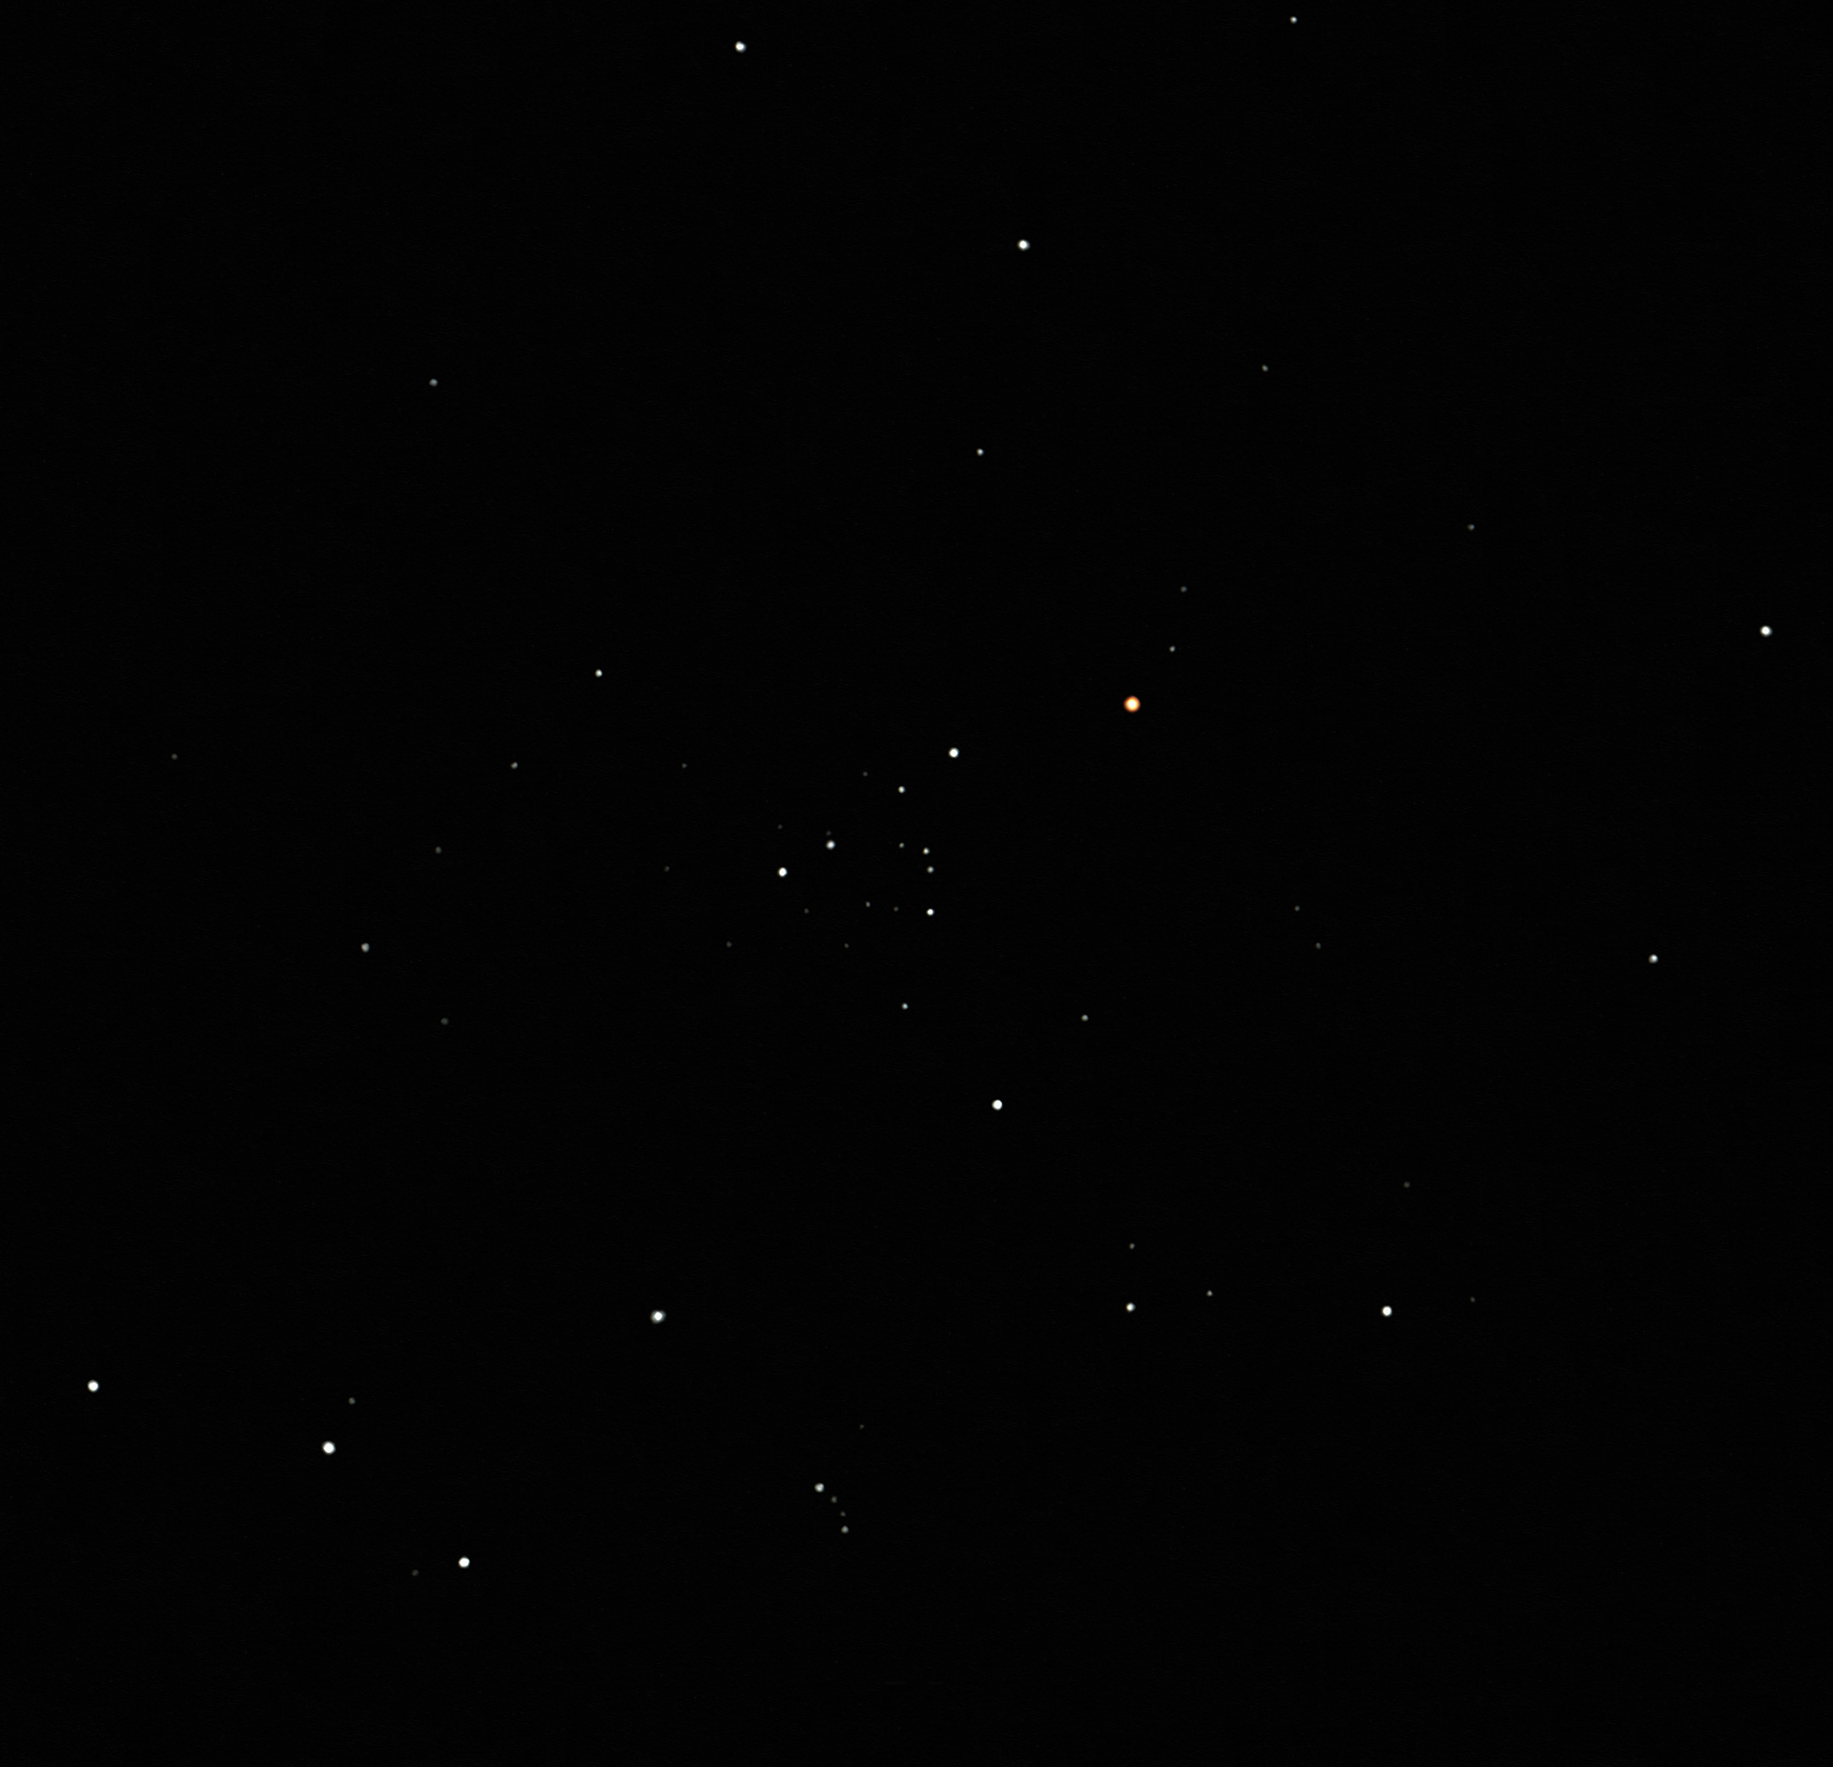 ngc 743 open cluster